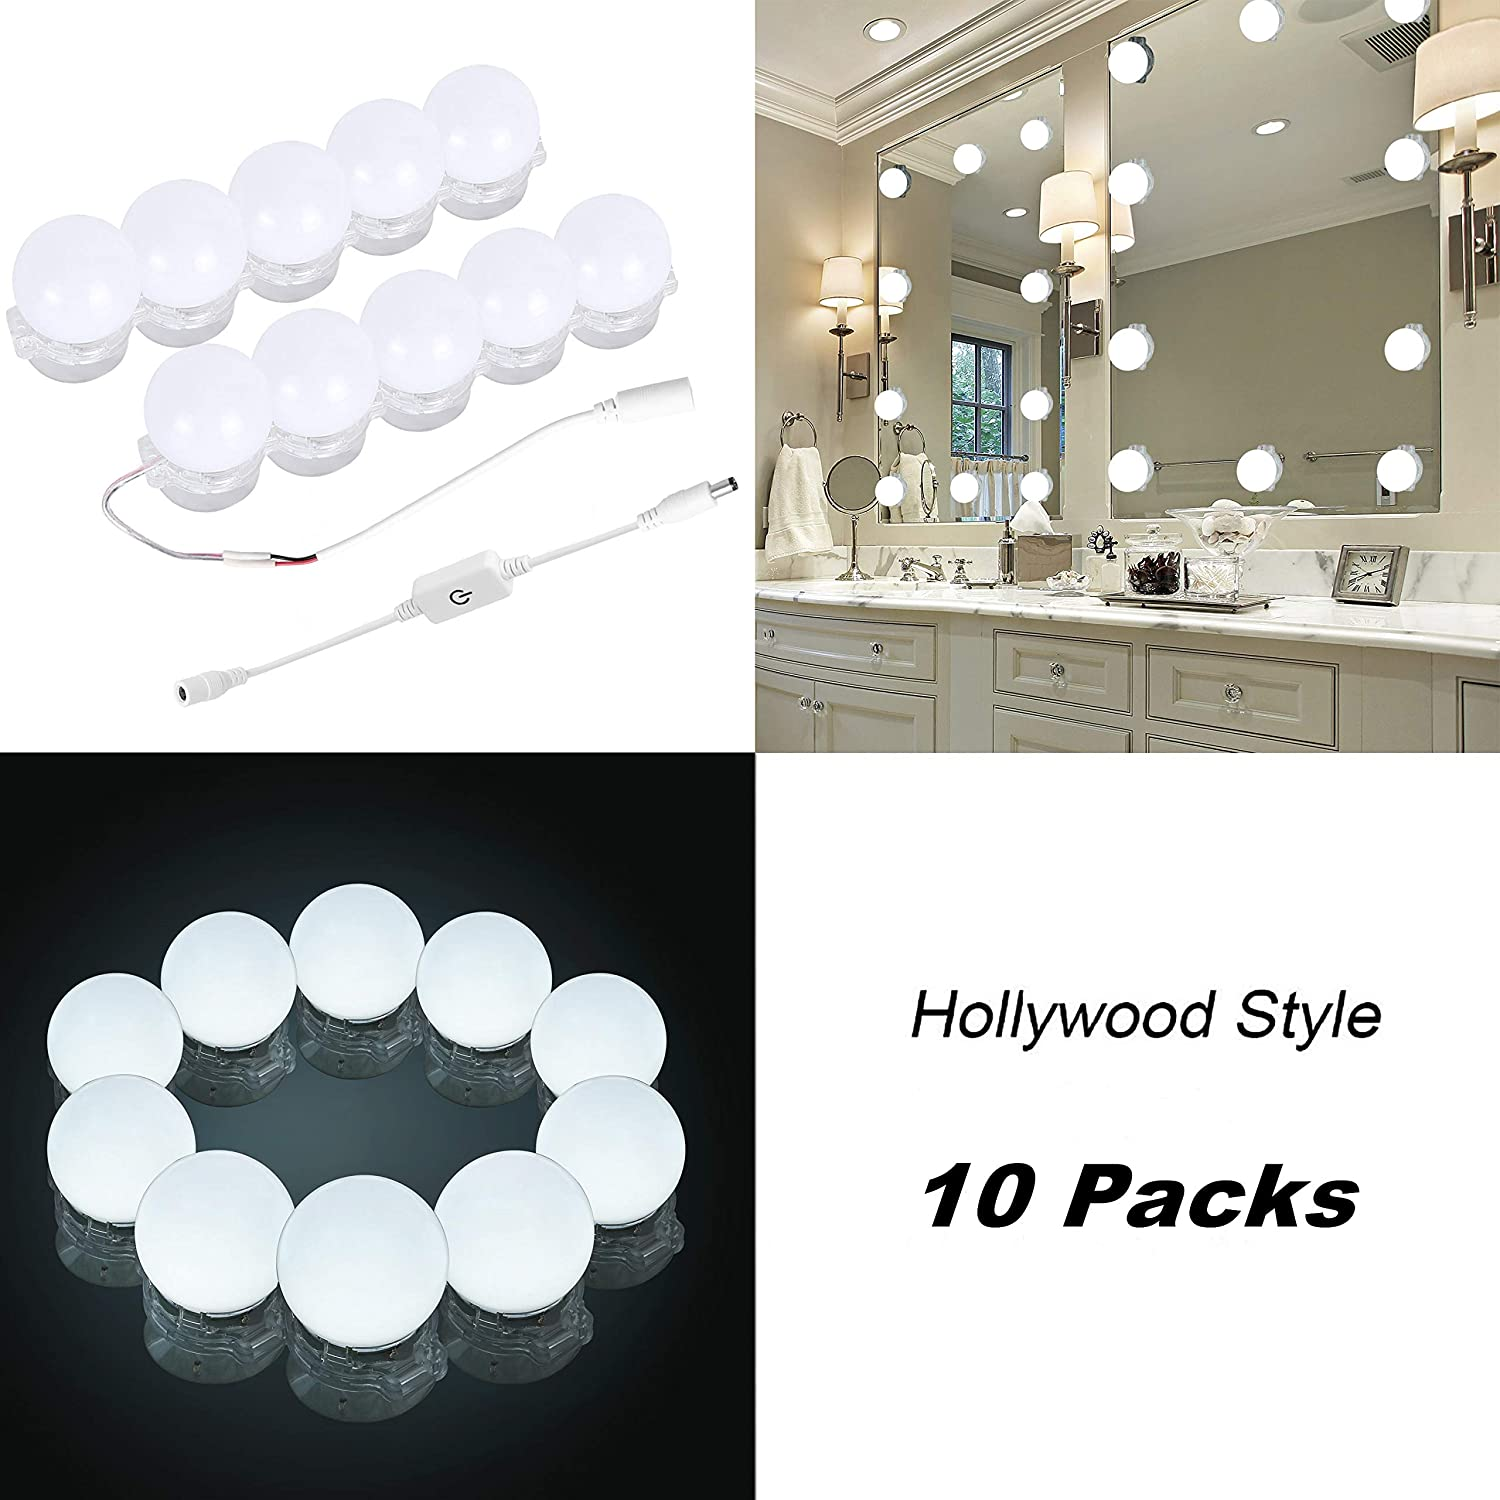 Lightess 9W Bathroom Mirror Light Modern LED Bathroom Wall Light Cool White IP44 Make-up Mirror Front Lighting Picture Light with Switch Adjustable Angle Chrome Finished Bathroom Accessories,Cool White